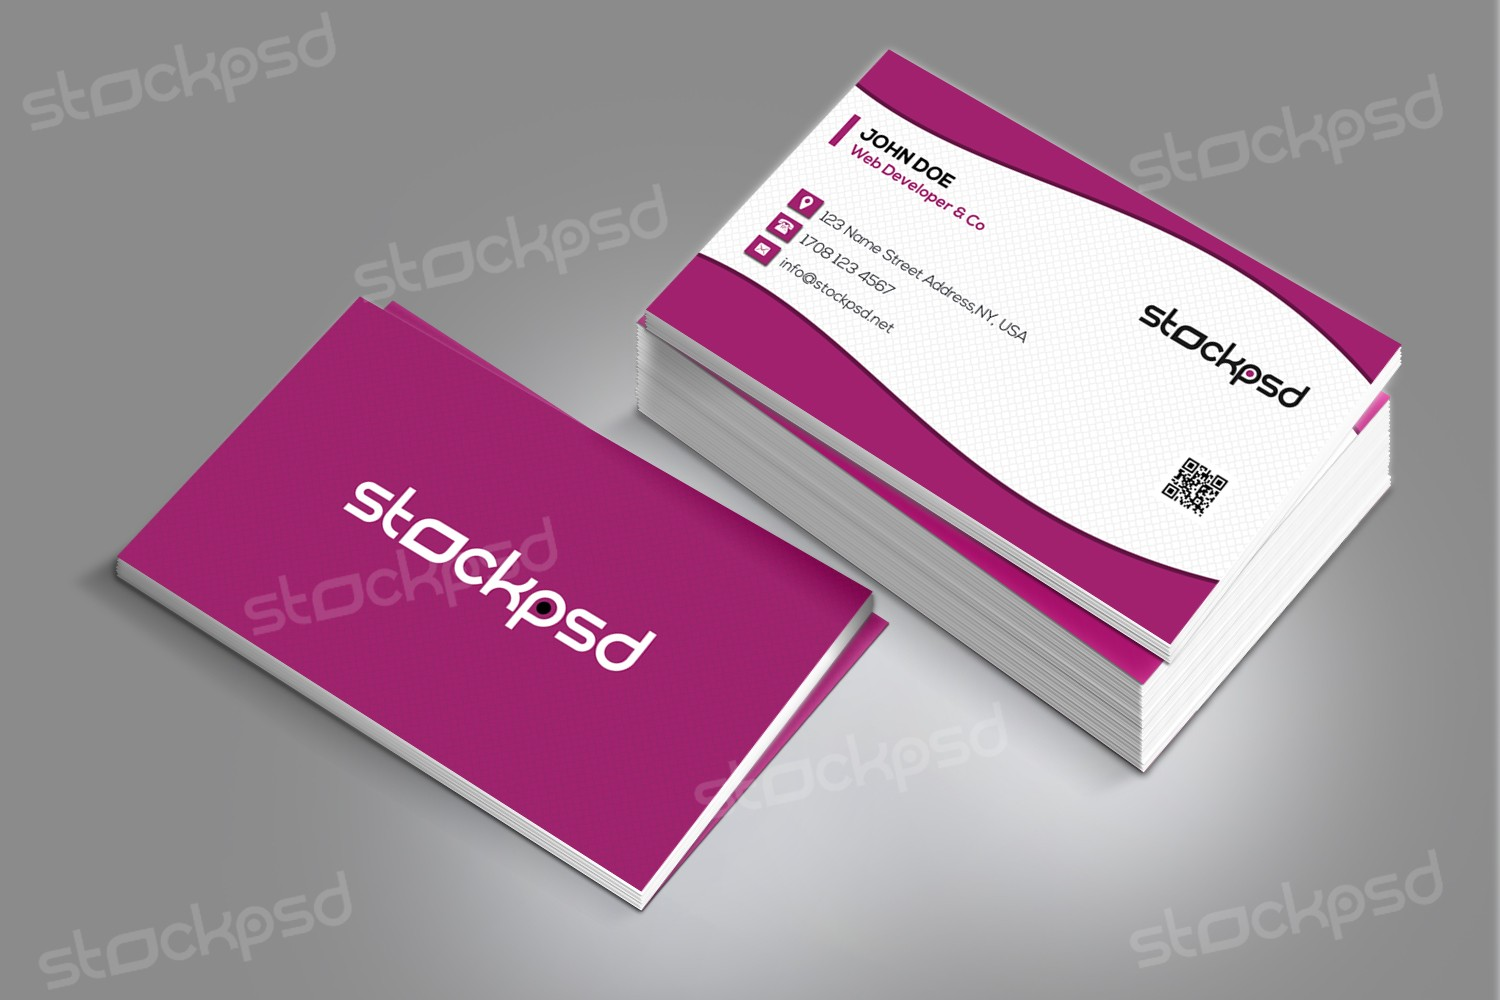 Stockpsd.net – Freebie Templates | Download Free PSD Business Cards ...